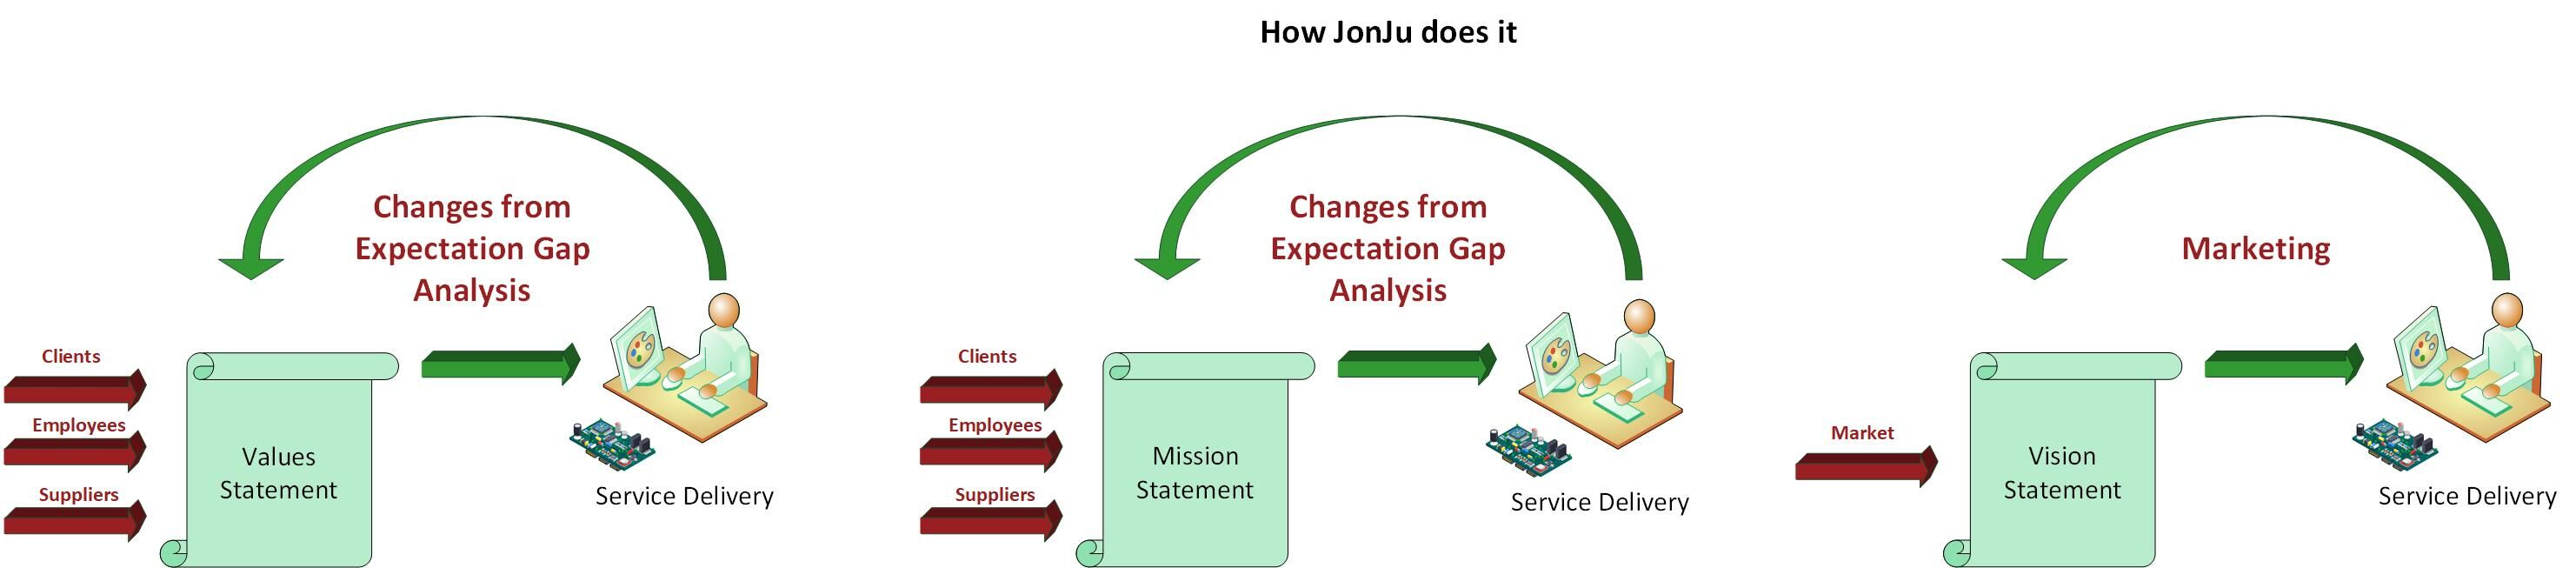 Image showing how JonJu delivers its values